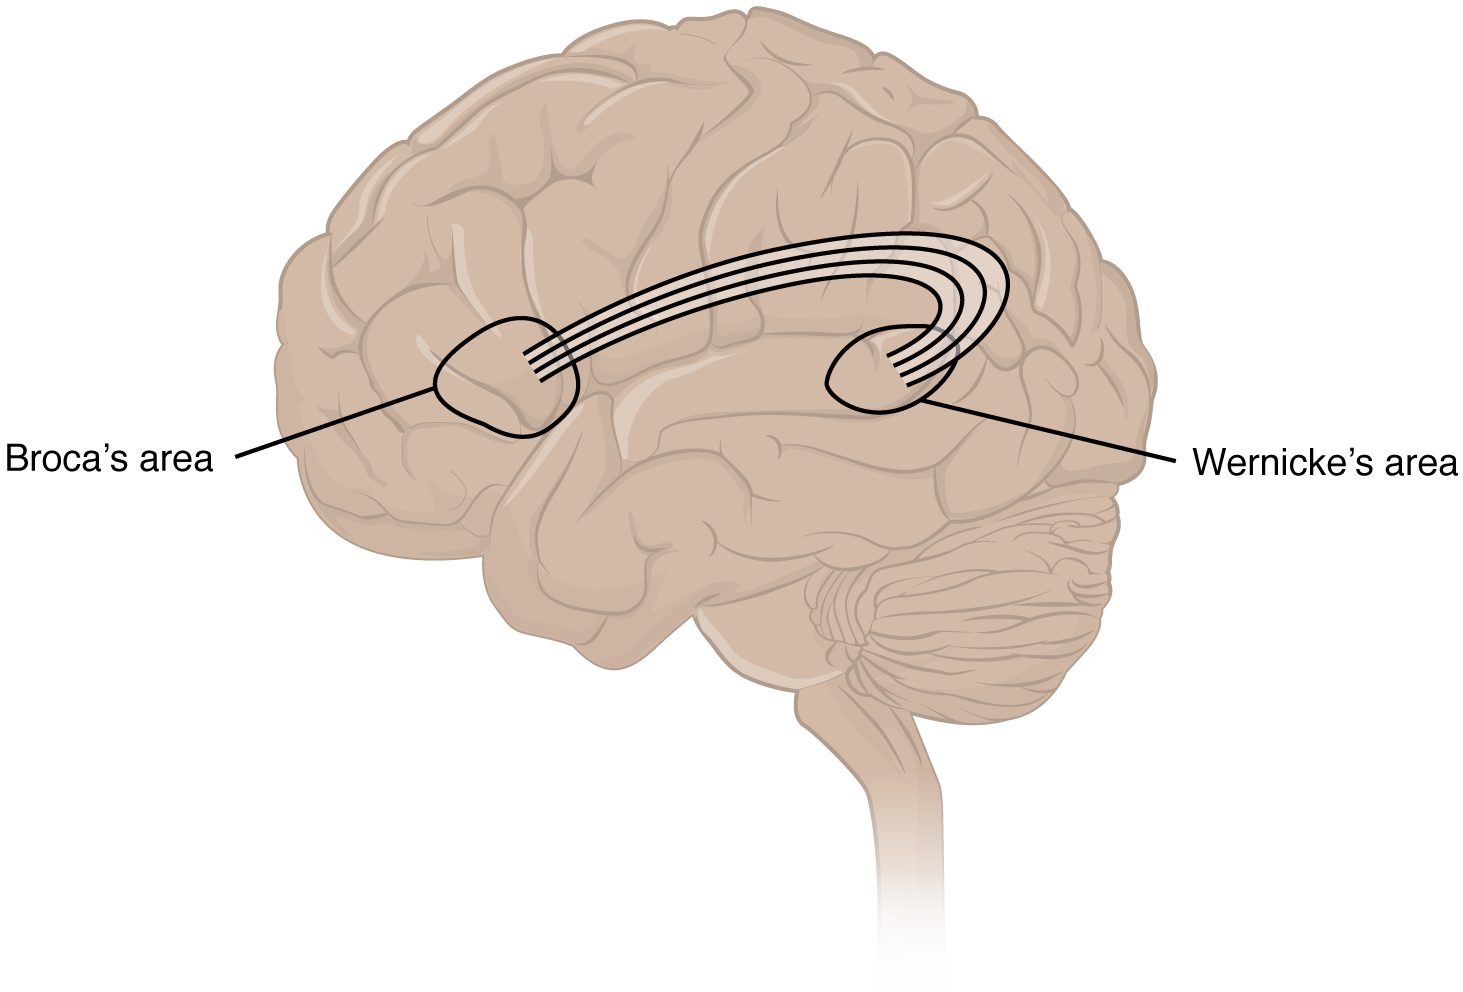 This figure shows the brain. Two labels mark the Broca's and Wernicke's areas.